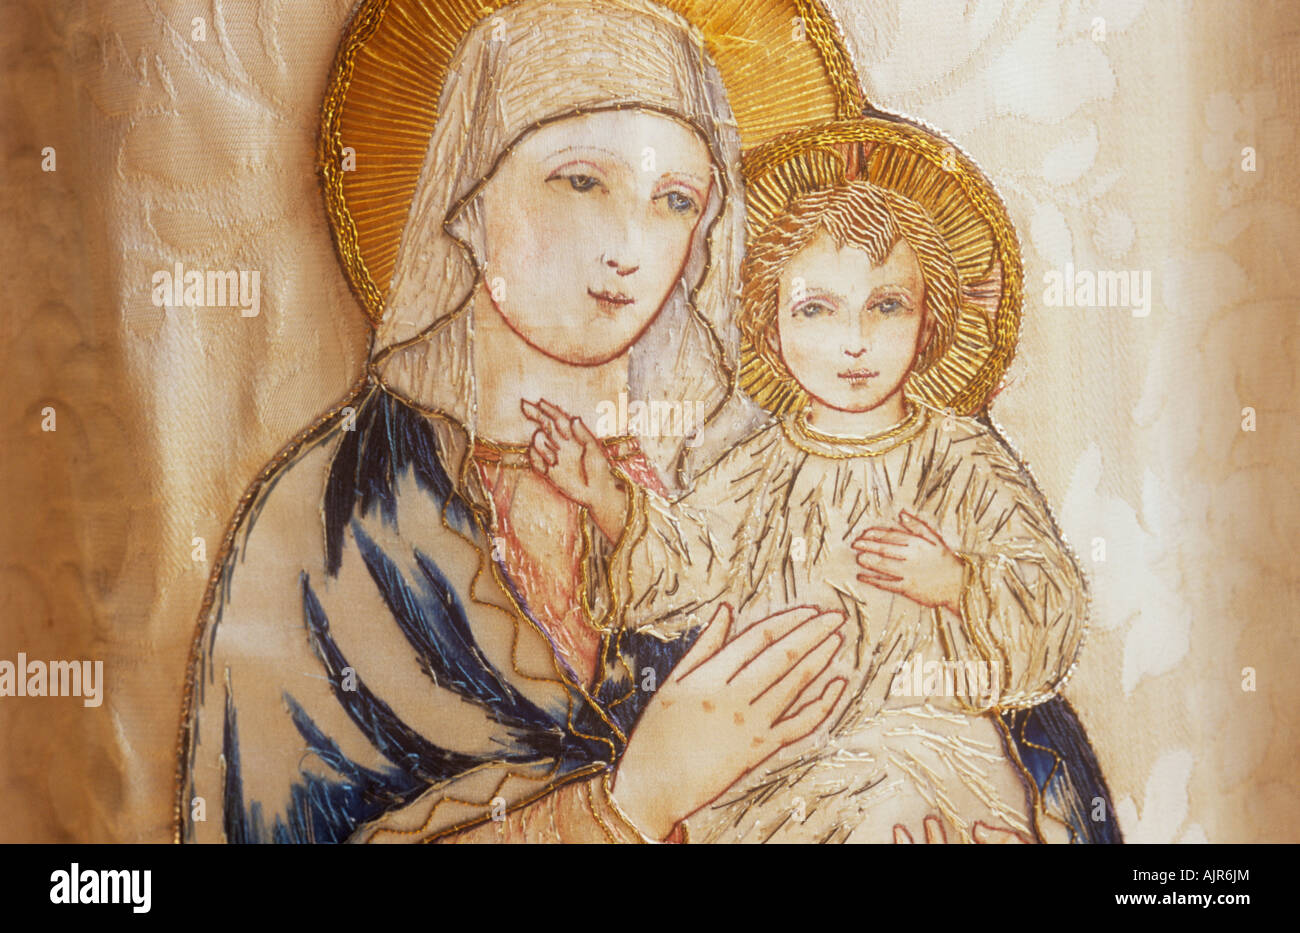 detail of embroidered image of virgin mary holding baby jesus